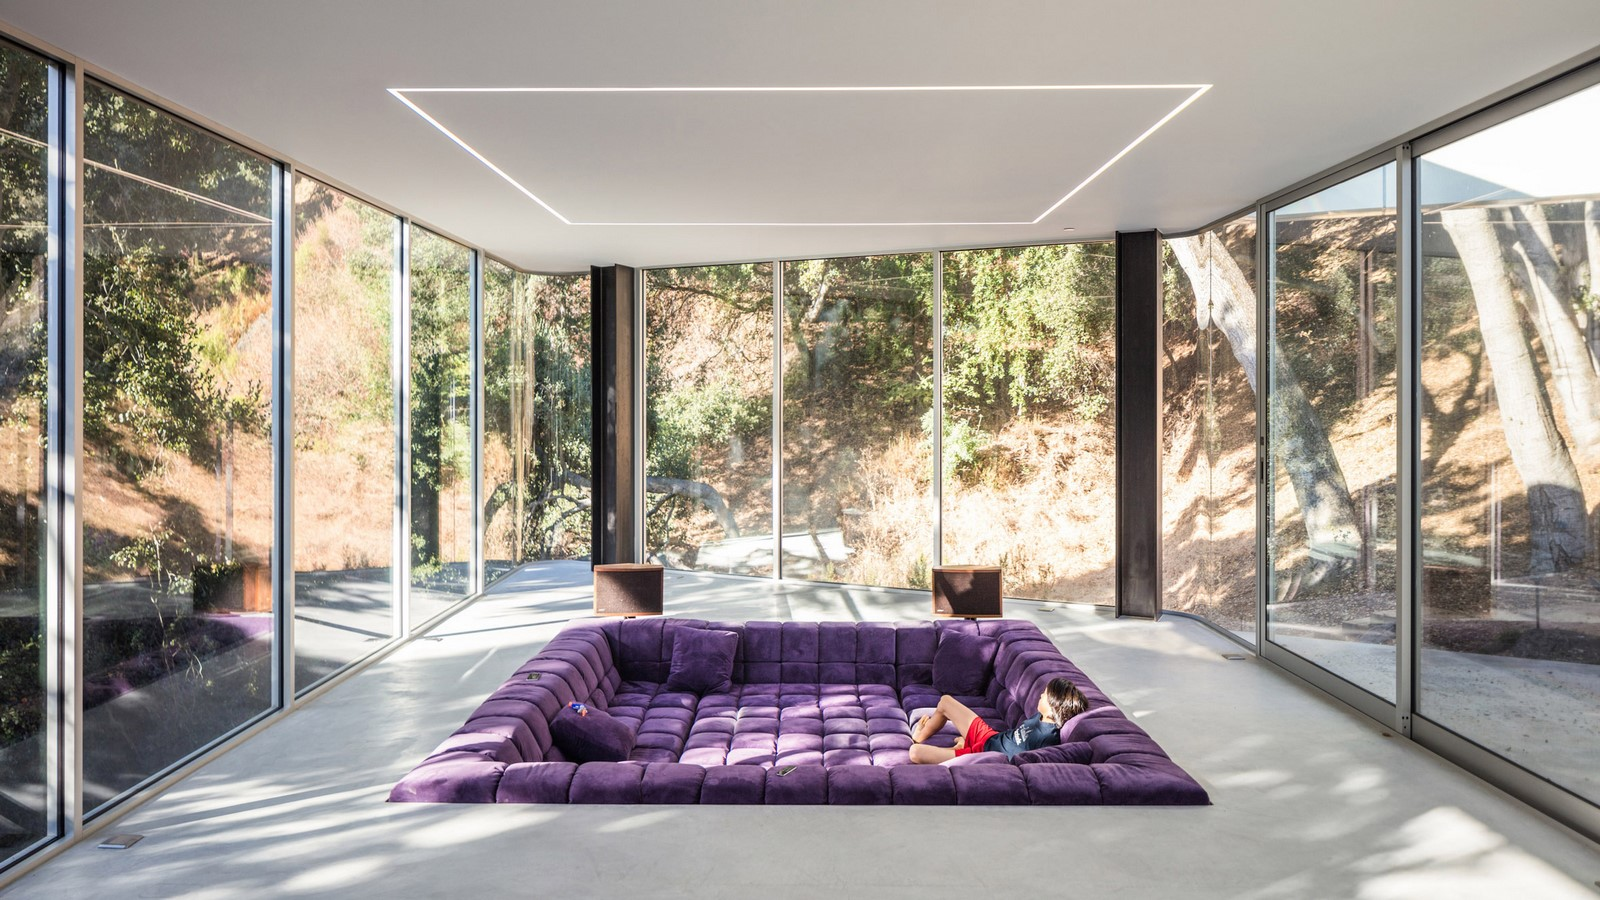 30 Examples of a conversation pit - Sheet19